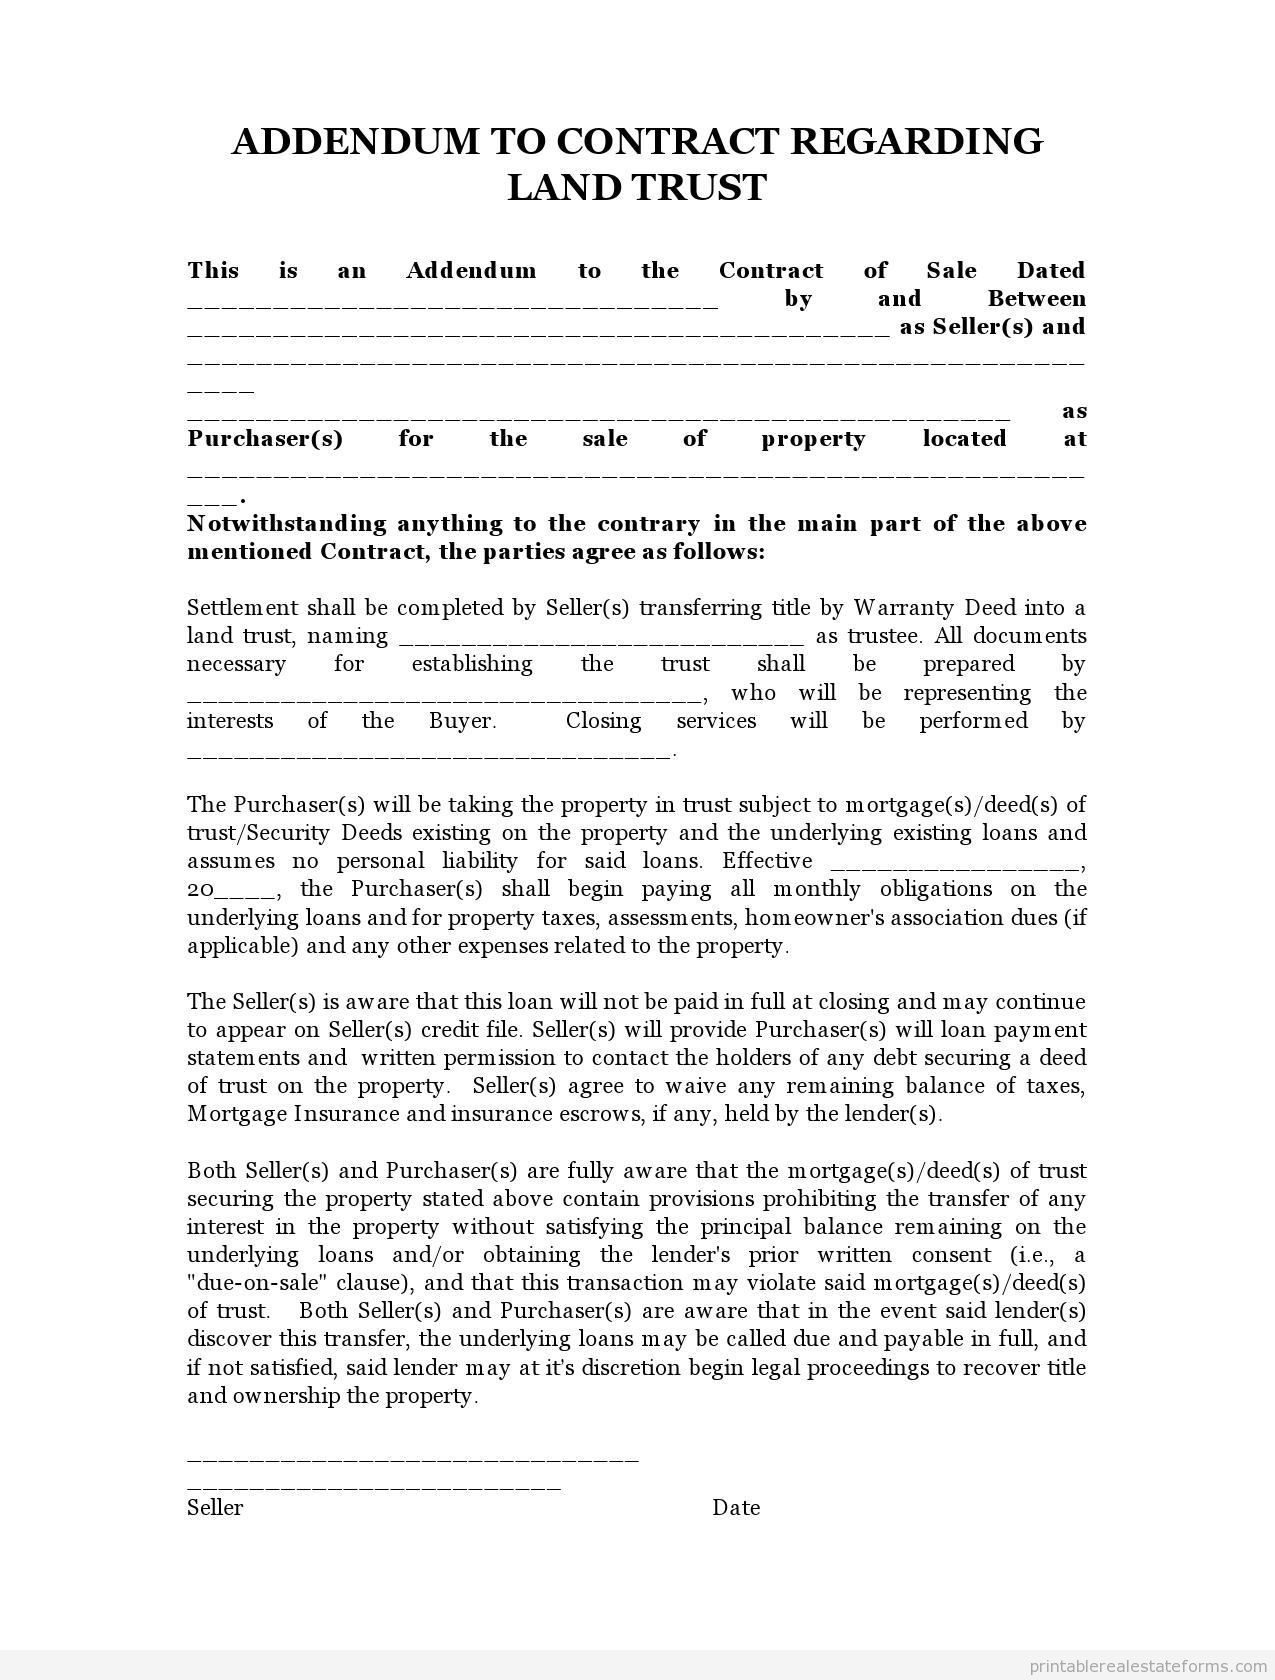 Sample Printable land trust addendum Form | Sample Real Estate Forms ...